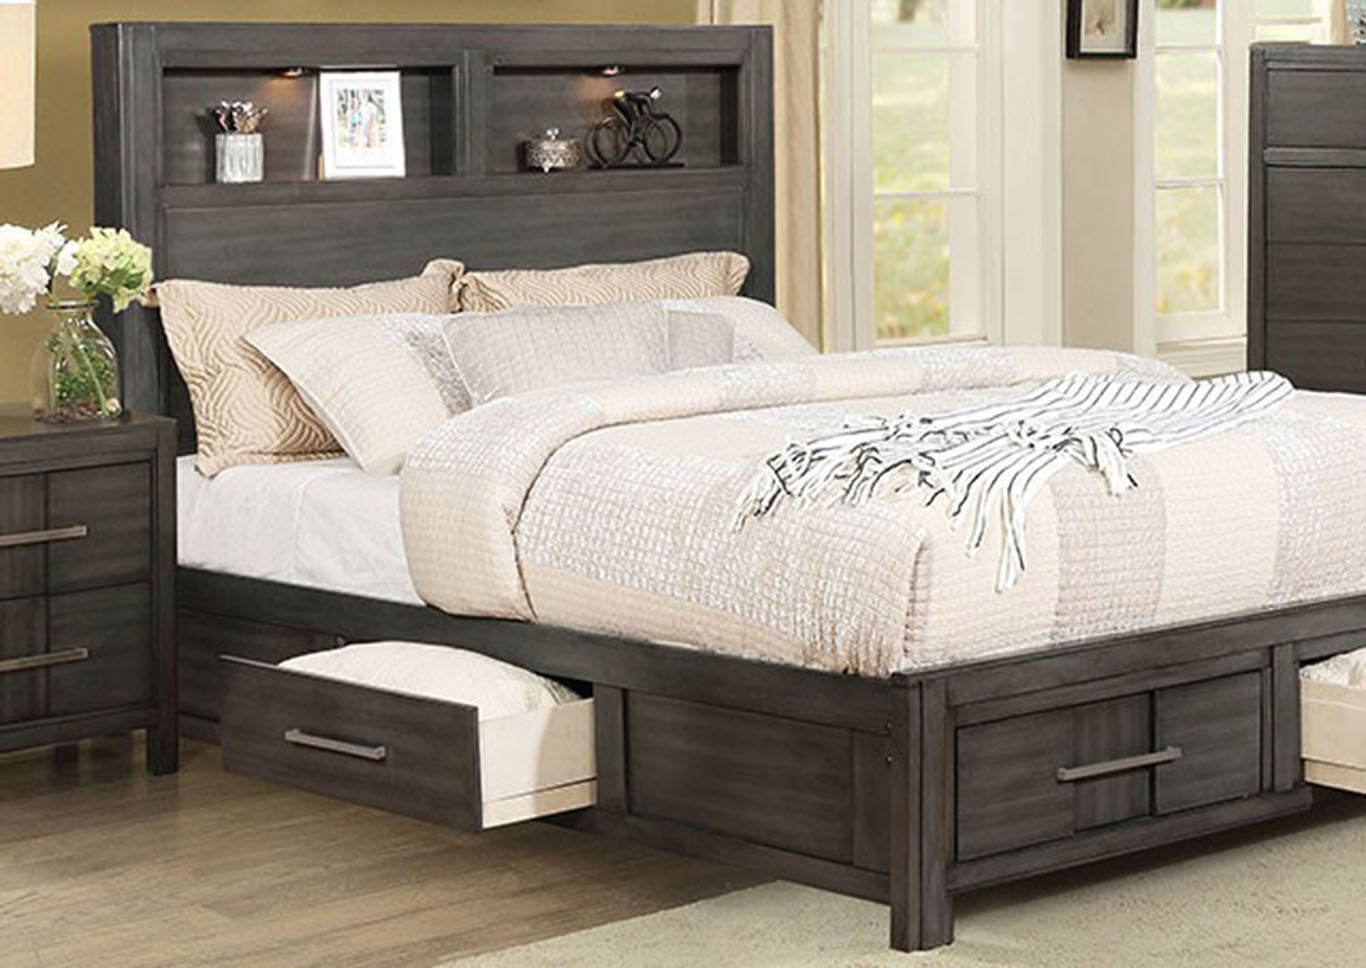 Karla Gray Queen Bookcase Storage Bed Lazy River Furniture